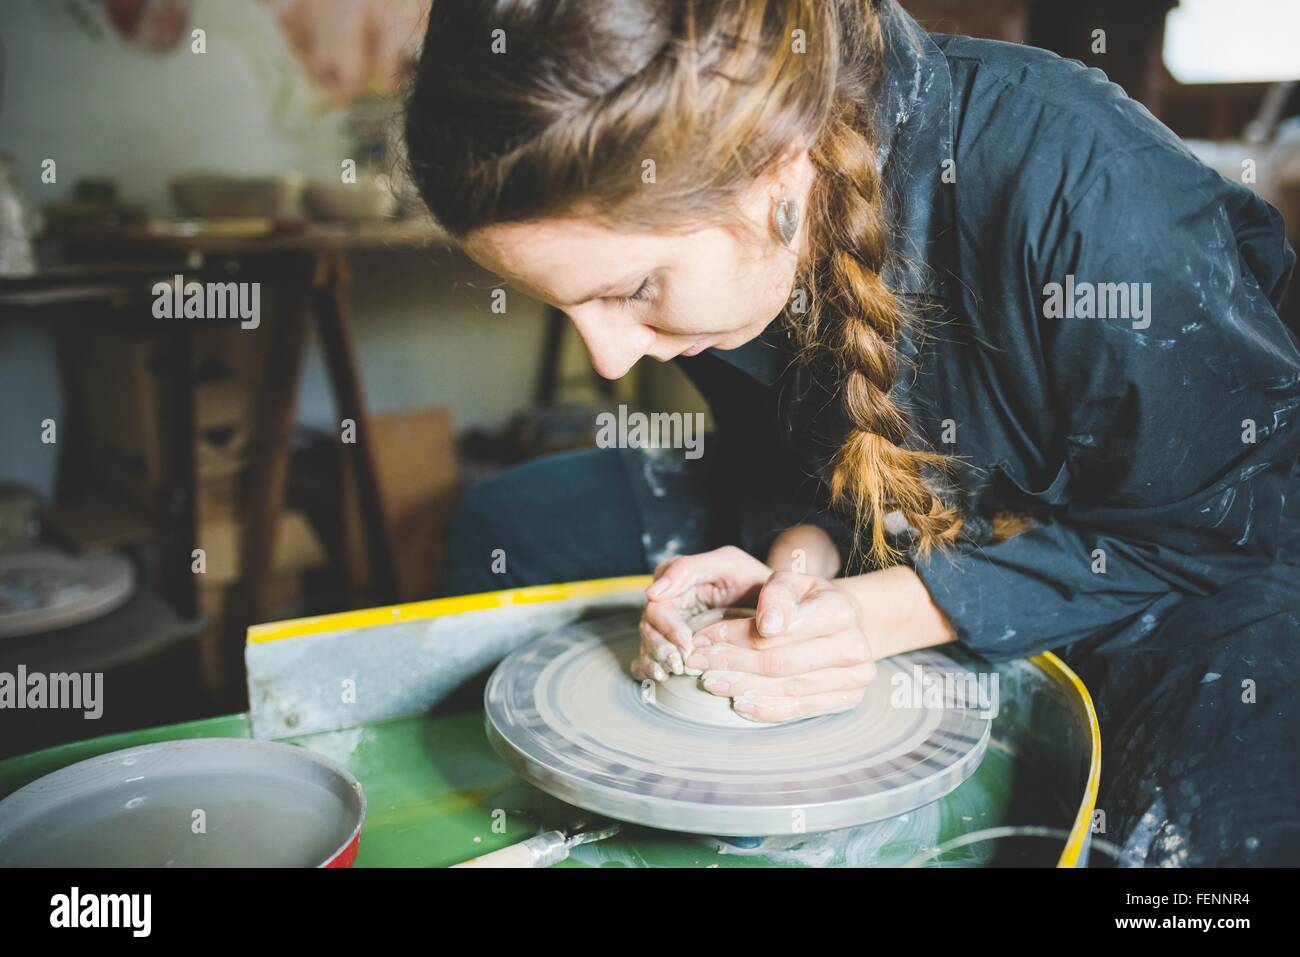 Young woman with plaited hair using pottery wheel - Stock Image